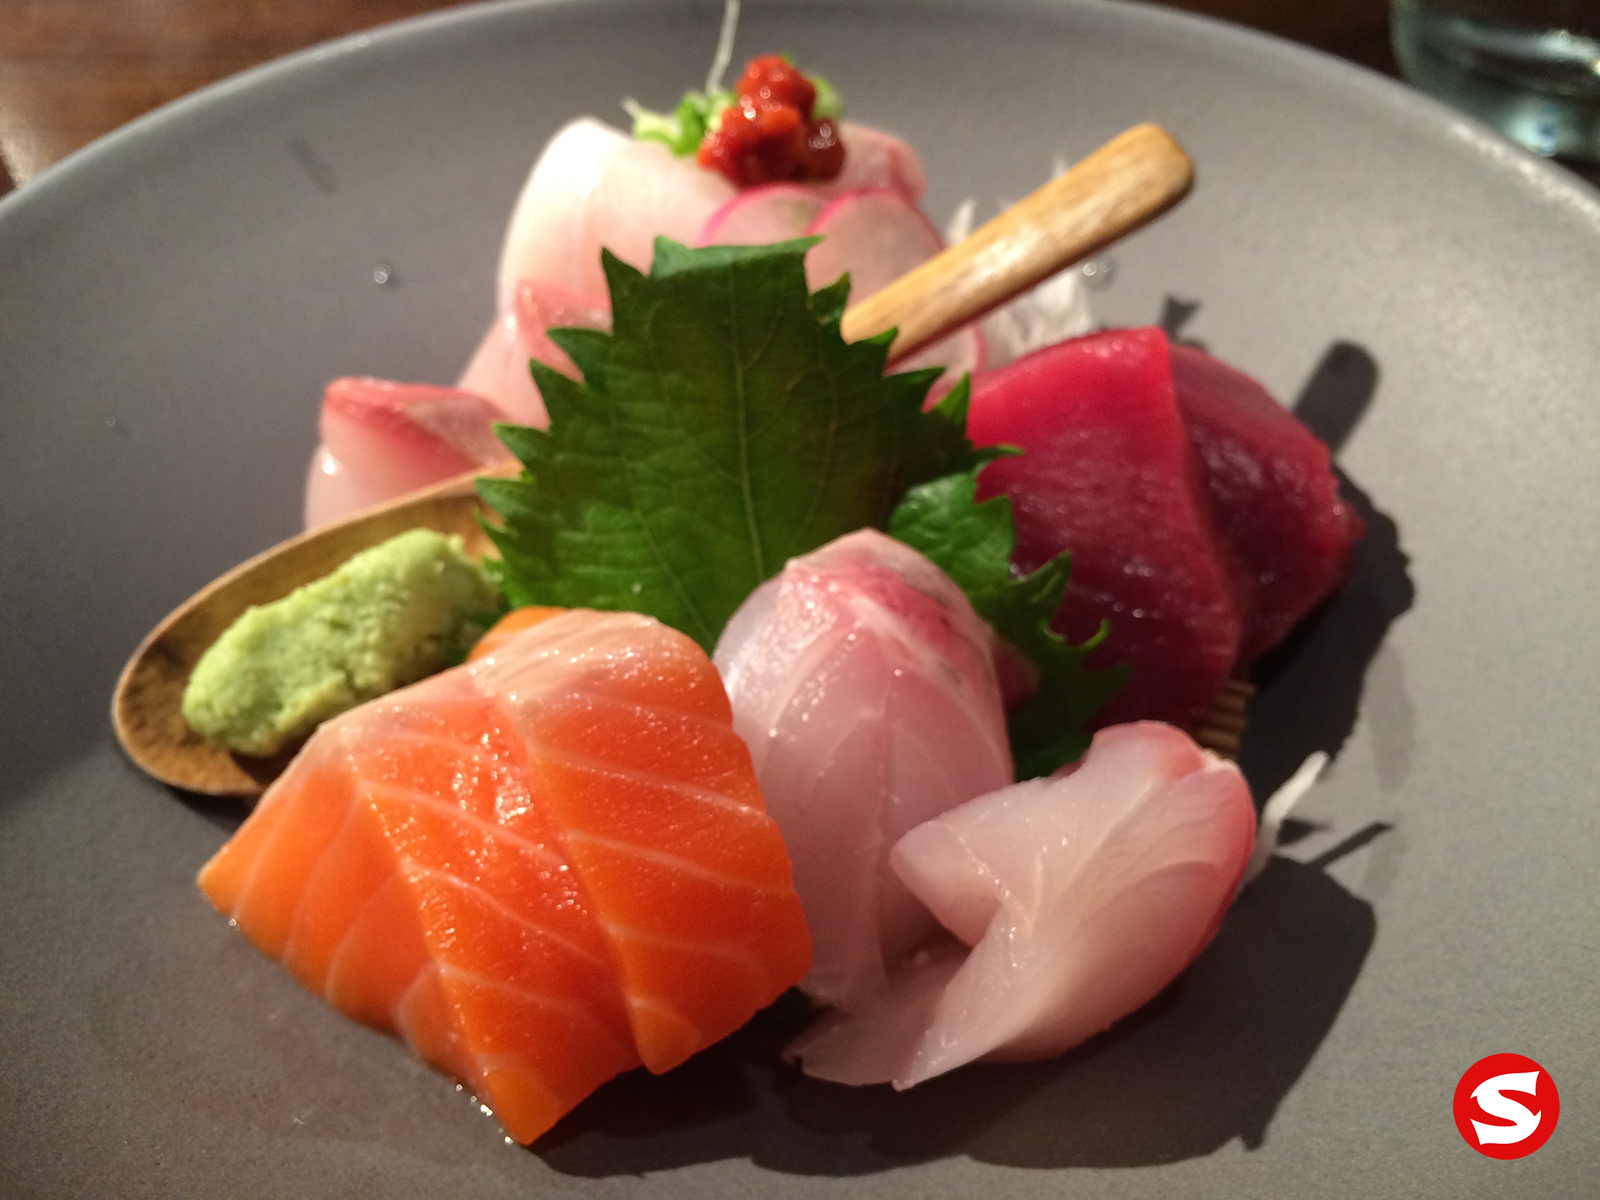 sake (king salmon), maguro (big eye tuna), suzuki (sea bass), hirame (halibut) sashimi